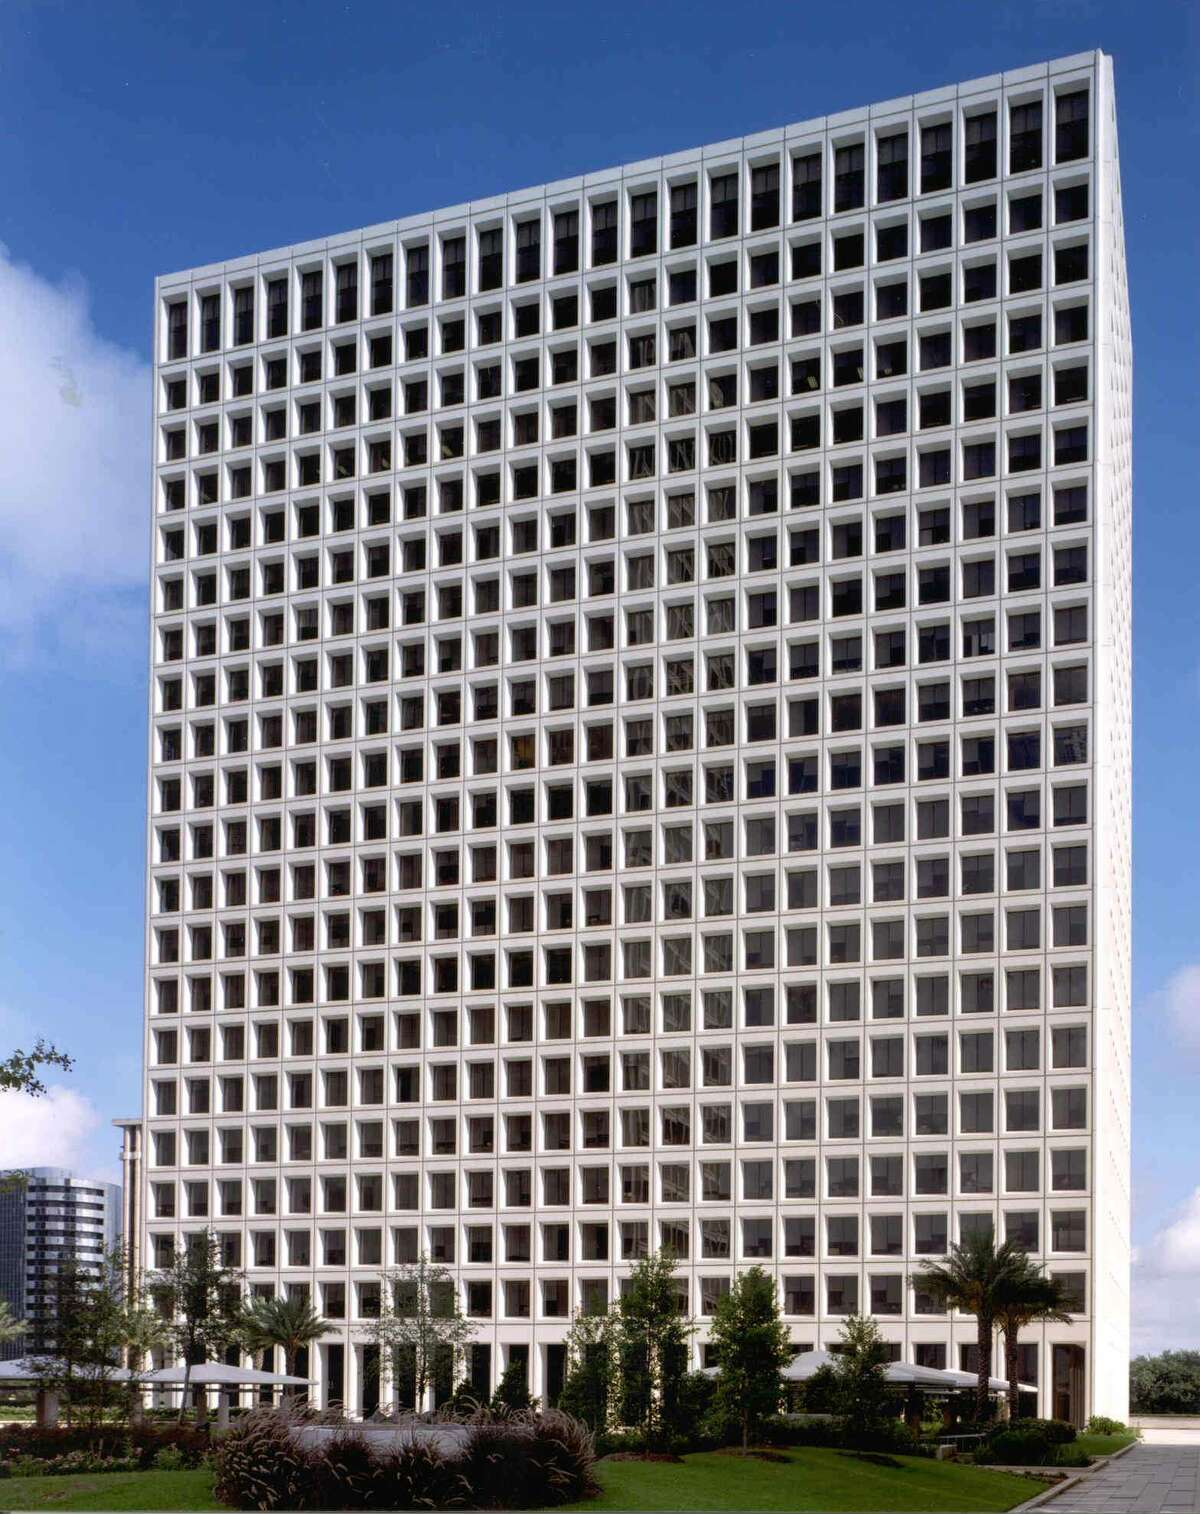 The fourth quarter marked a 20-year record for office leasing in the Houston area, according to commercial real estate firm JLL. The company listed Occidental Petroleum's 46,096-square-foot lease in Greenway Plaza among notable transactions.